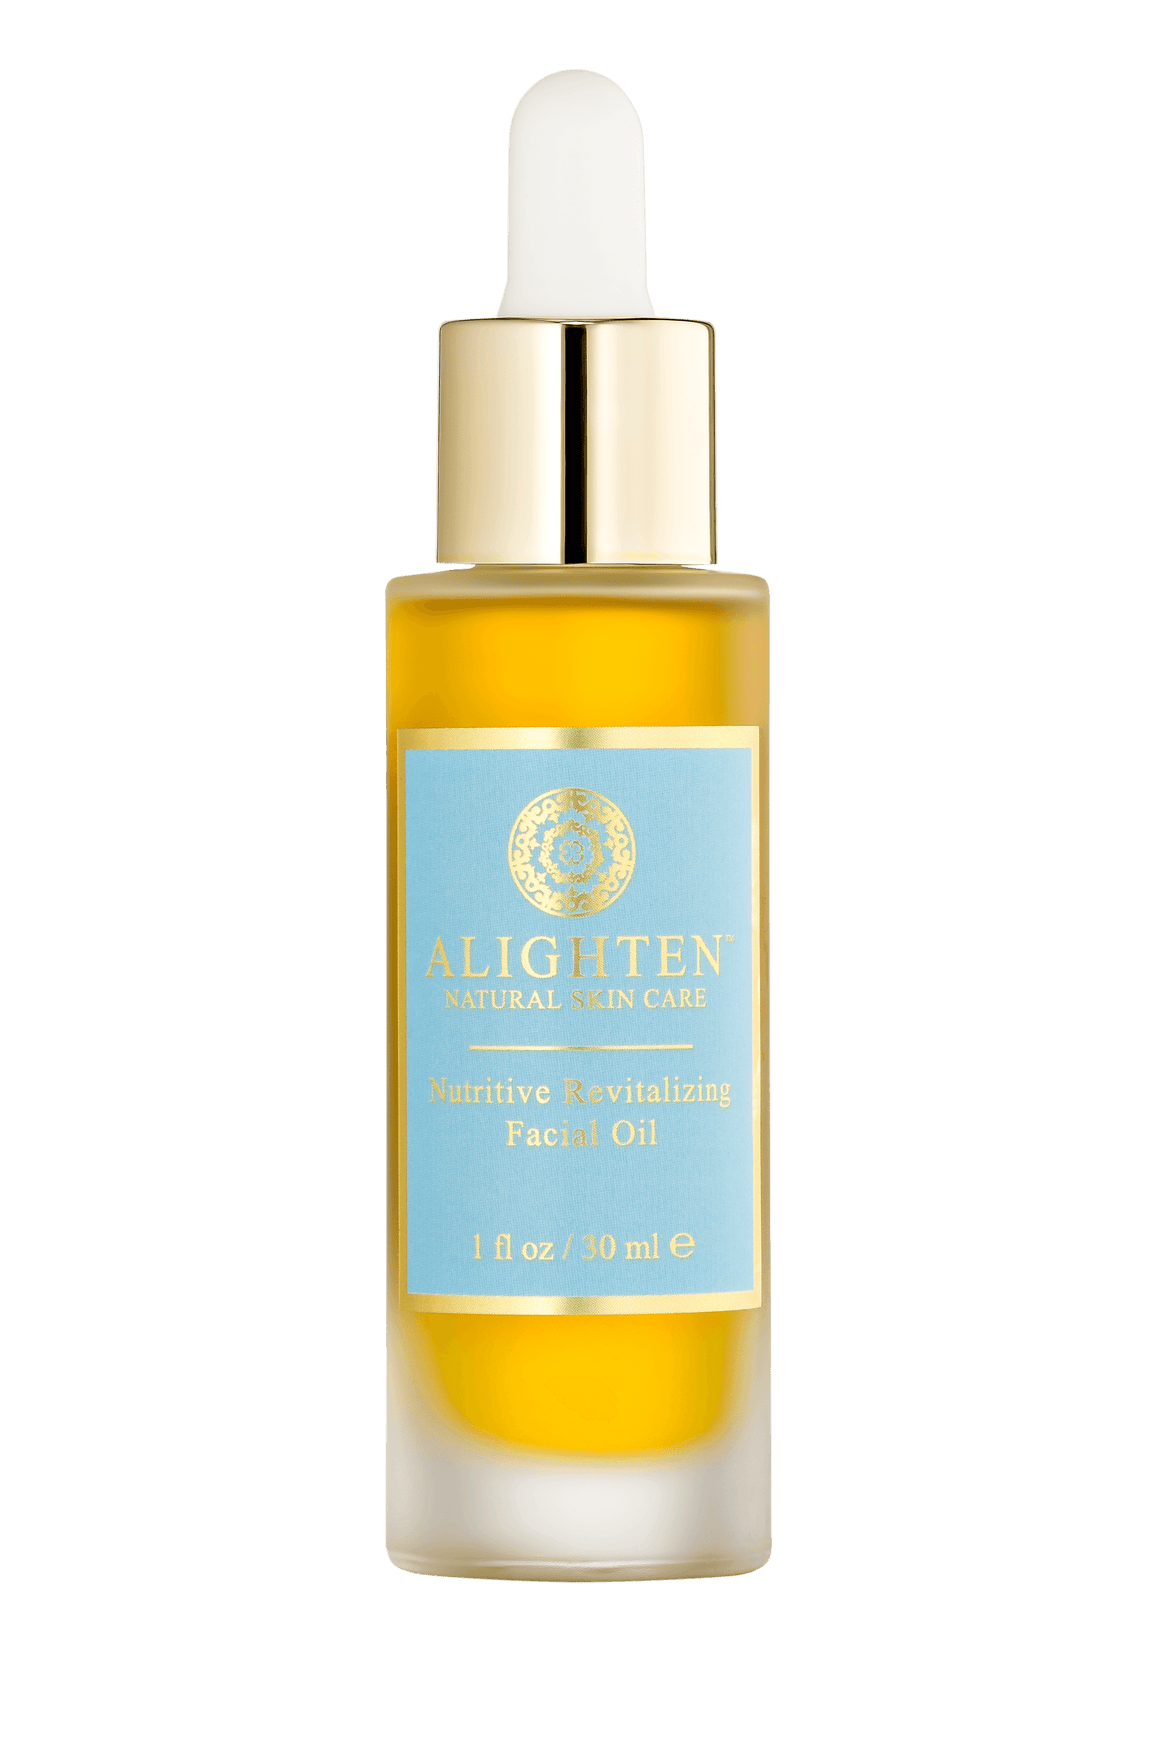 Nutritive Revitalizing Facial Oil